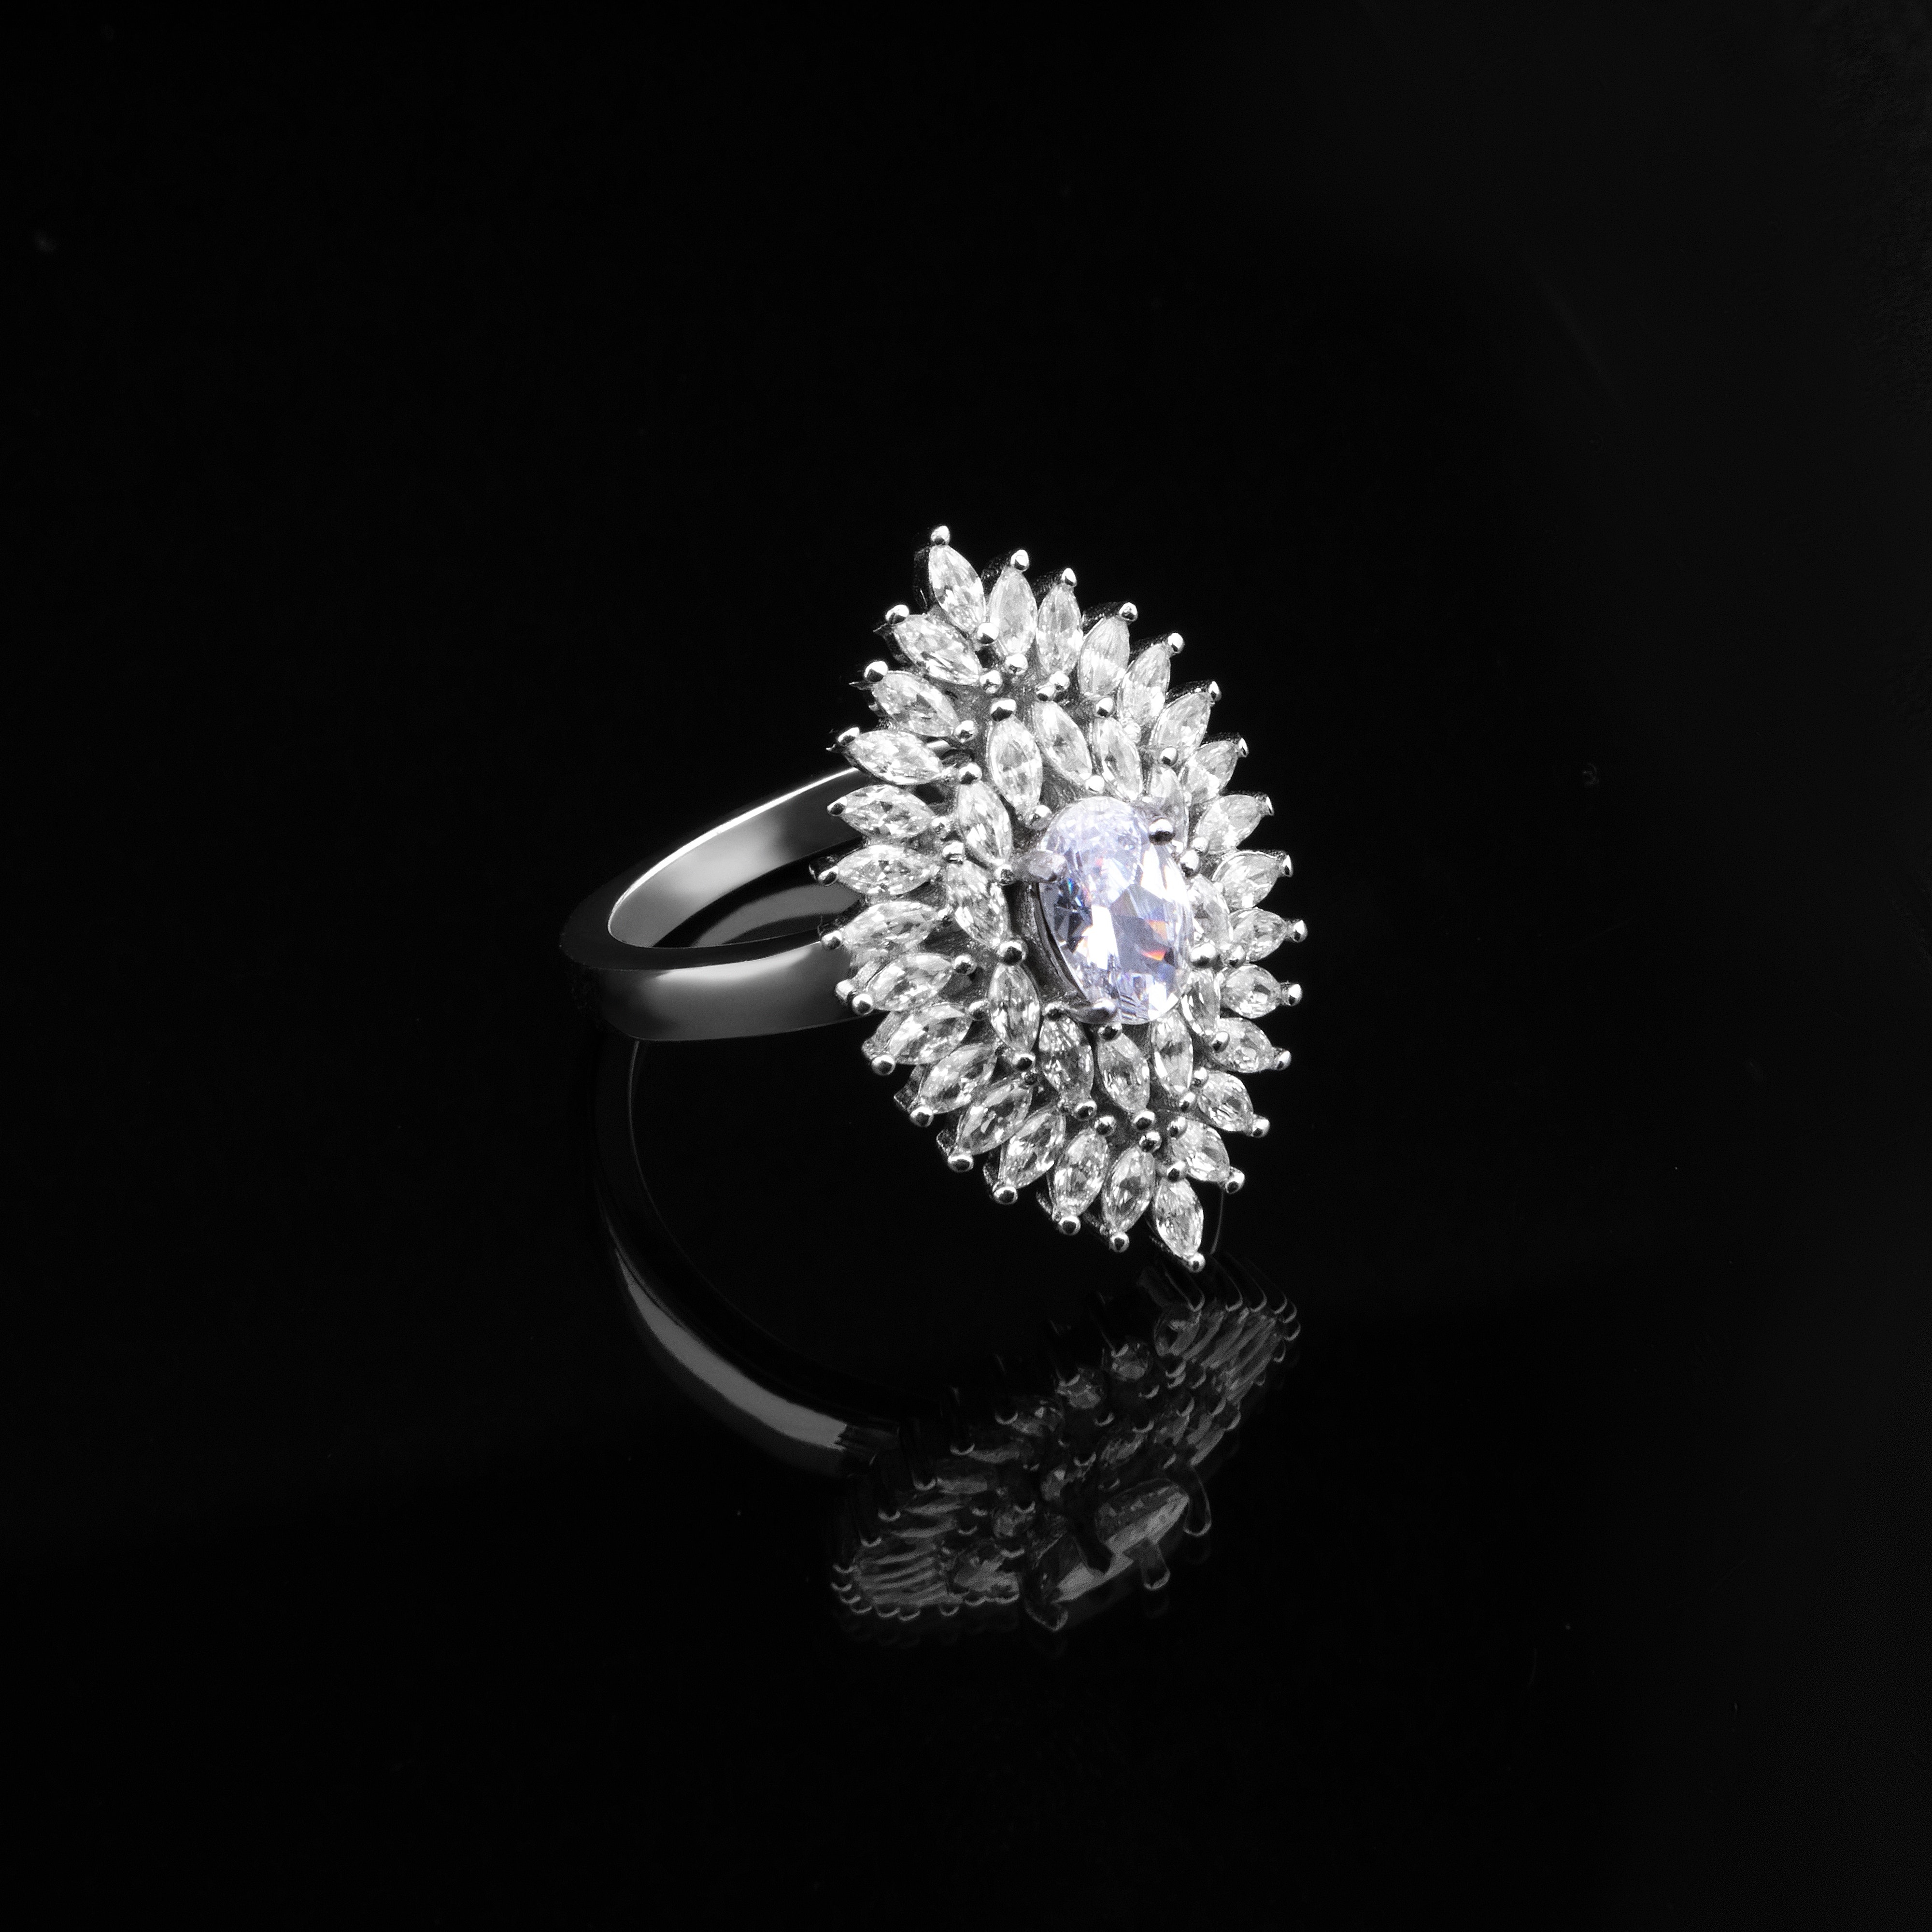 Grayscale Photography Of A Ring With Diamonds Free Stock Photo